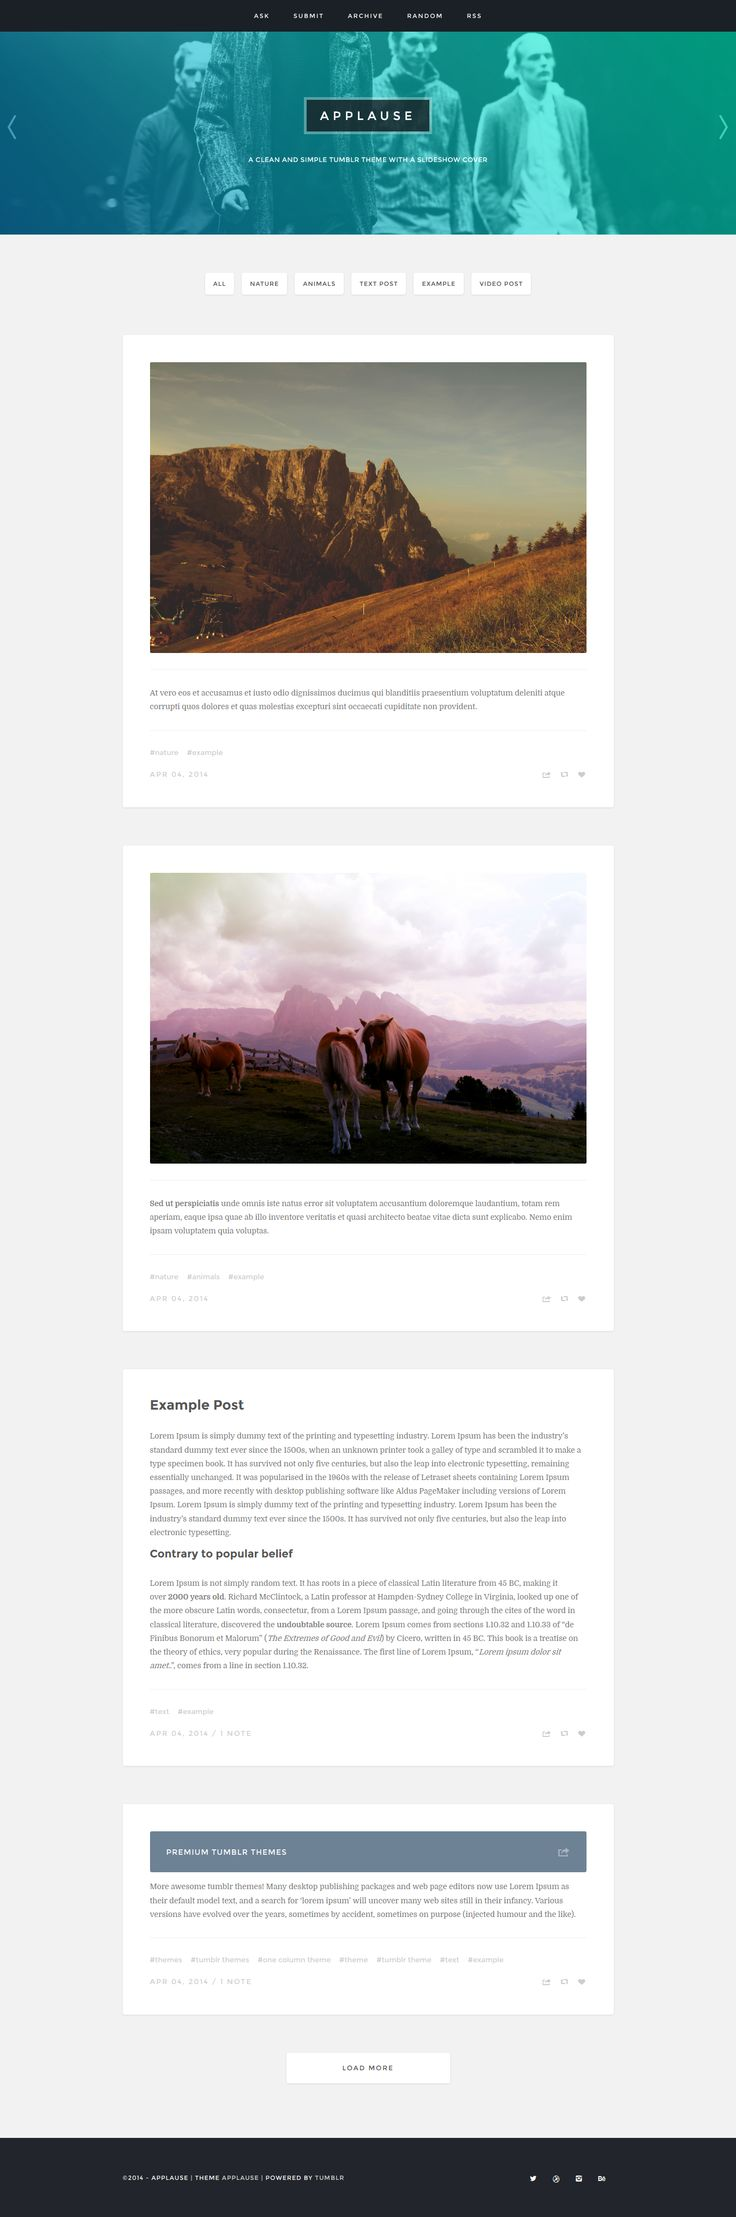 Random colors website - Applause Is A Clean And Simple Tumblr Theme With A Slideshow Cover All Colors